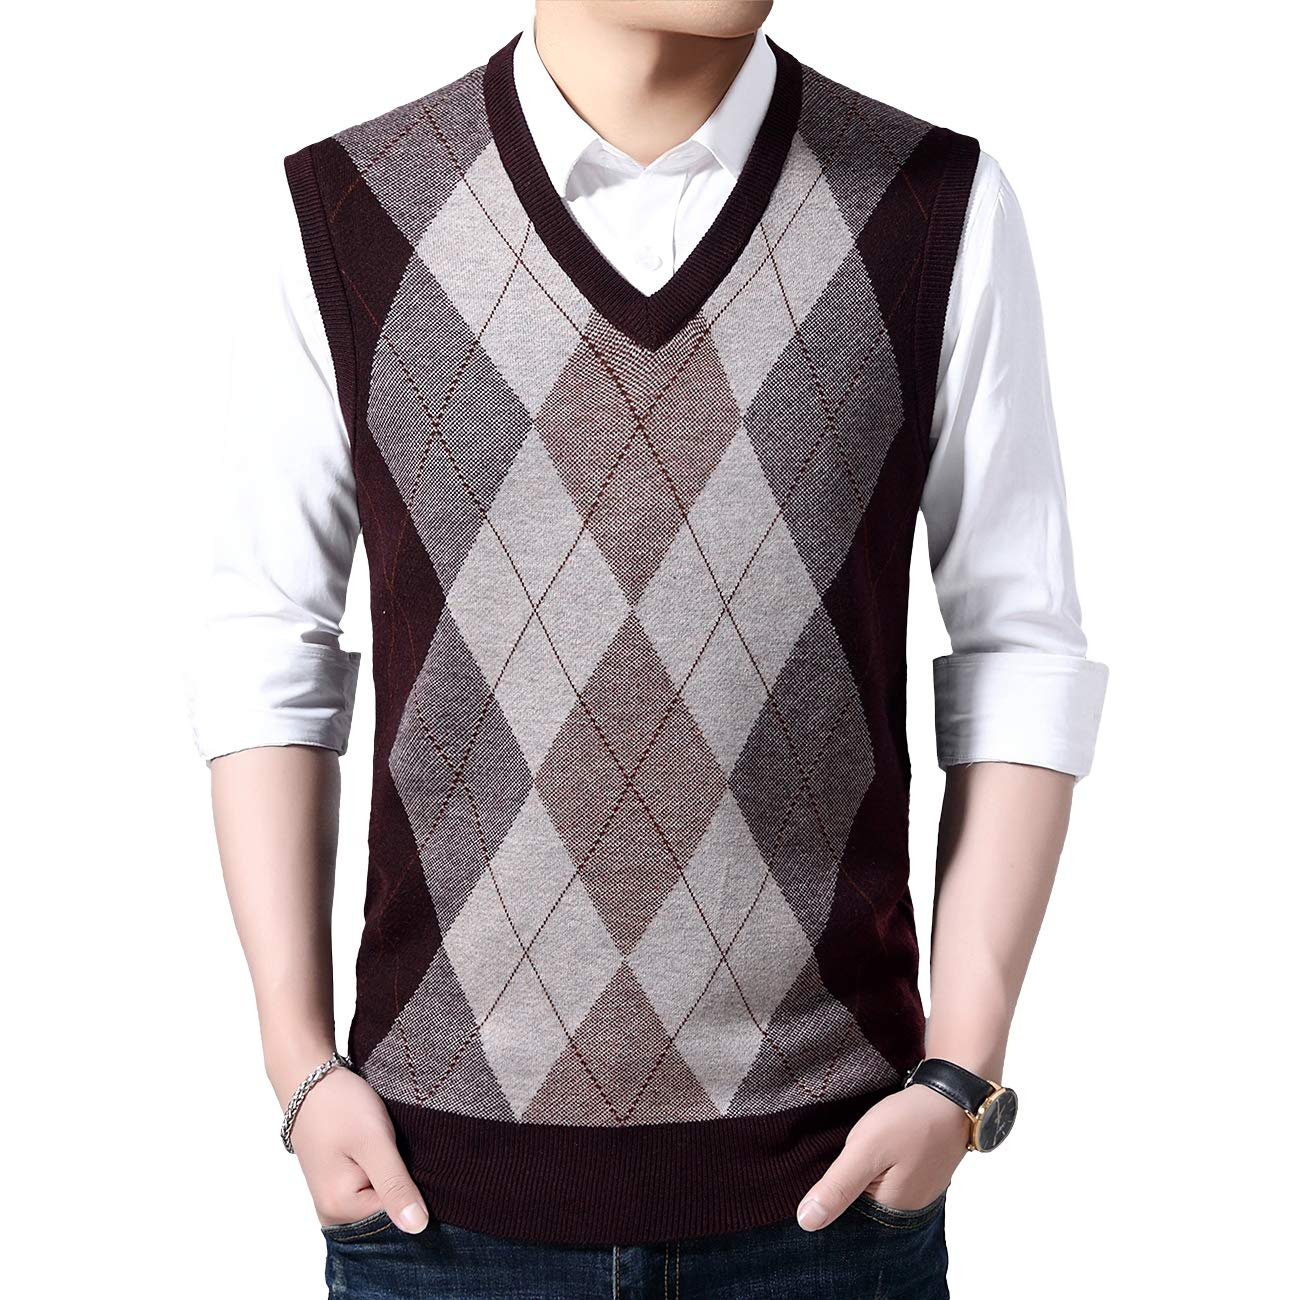 Sleeveless Jumpers & Knitted Gilets Clothing Biutimarden